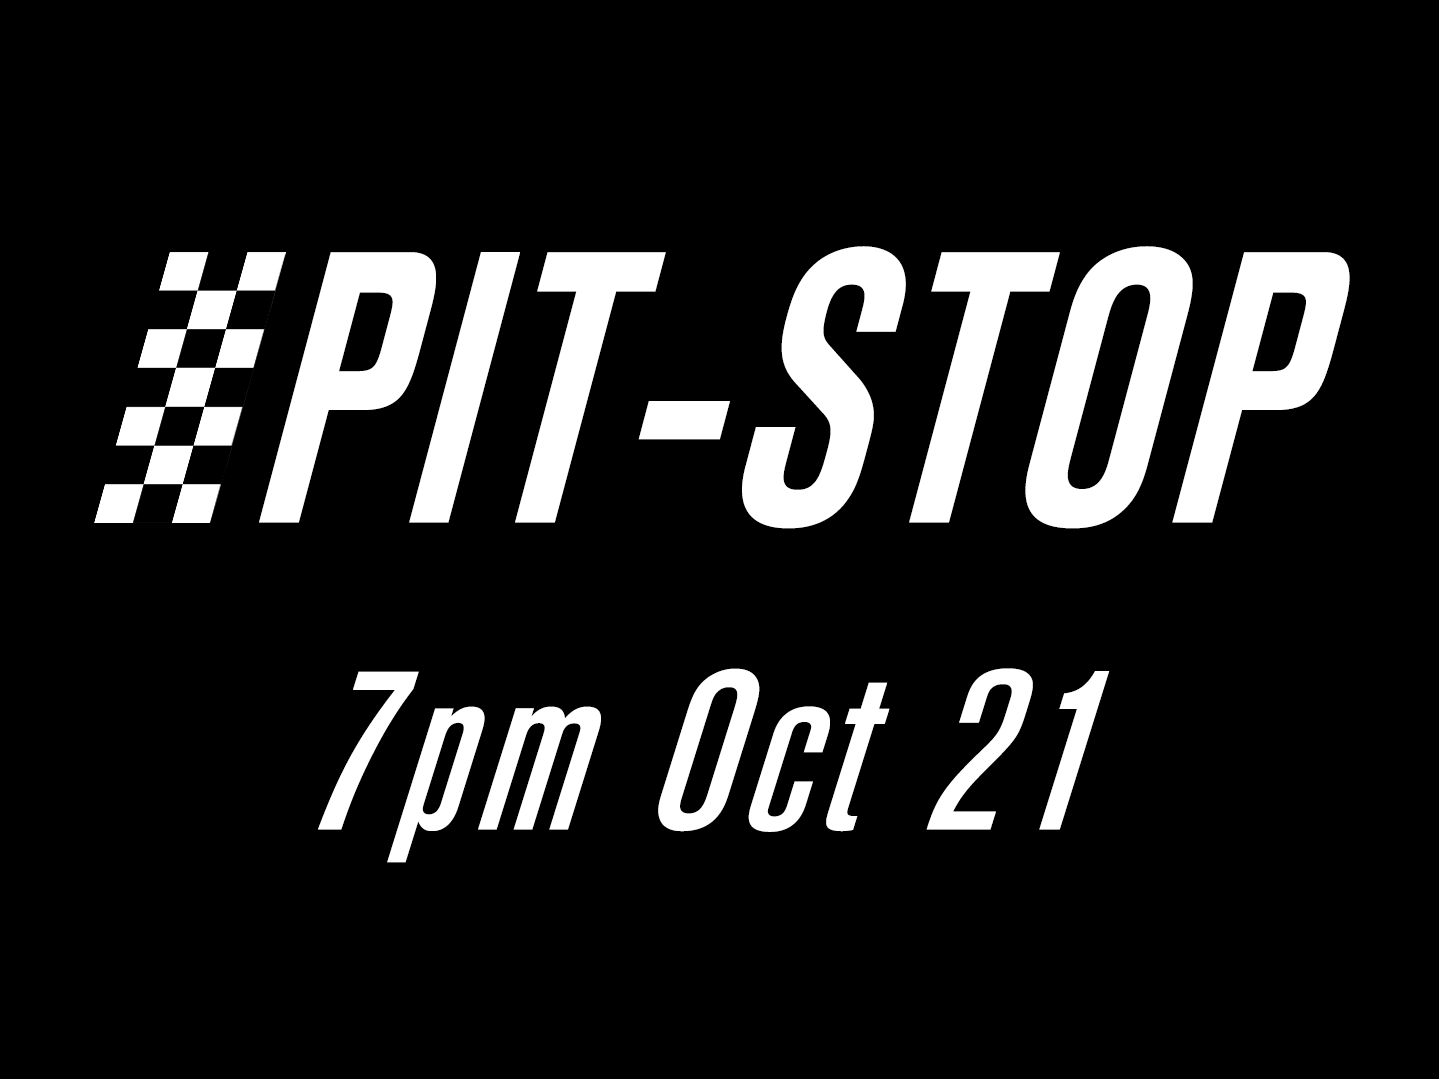 Pitstop Oct21_4.3.png